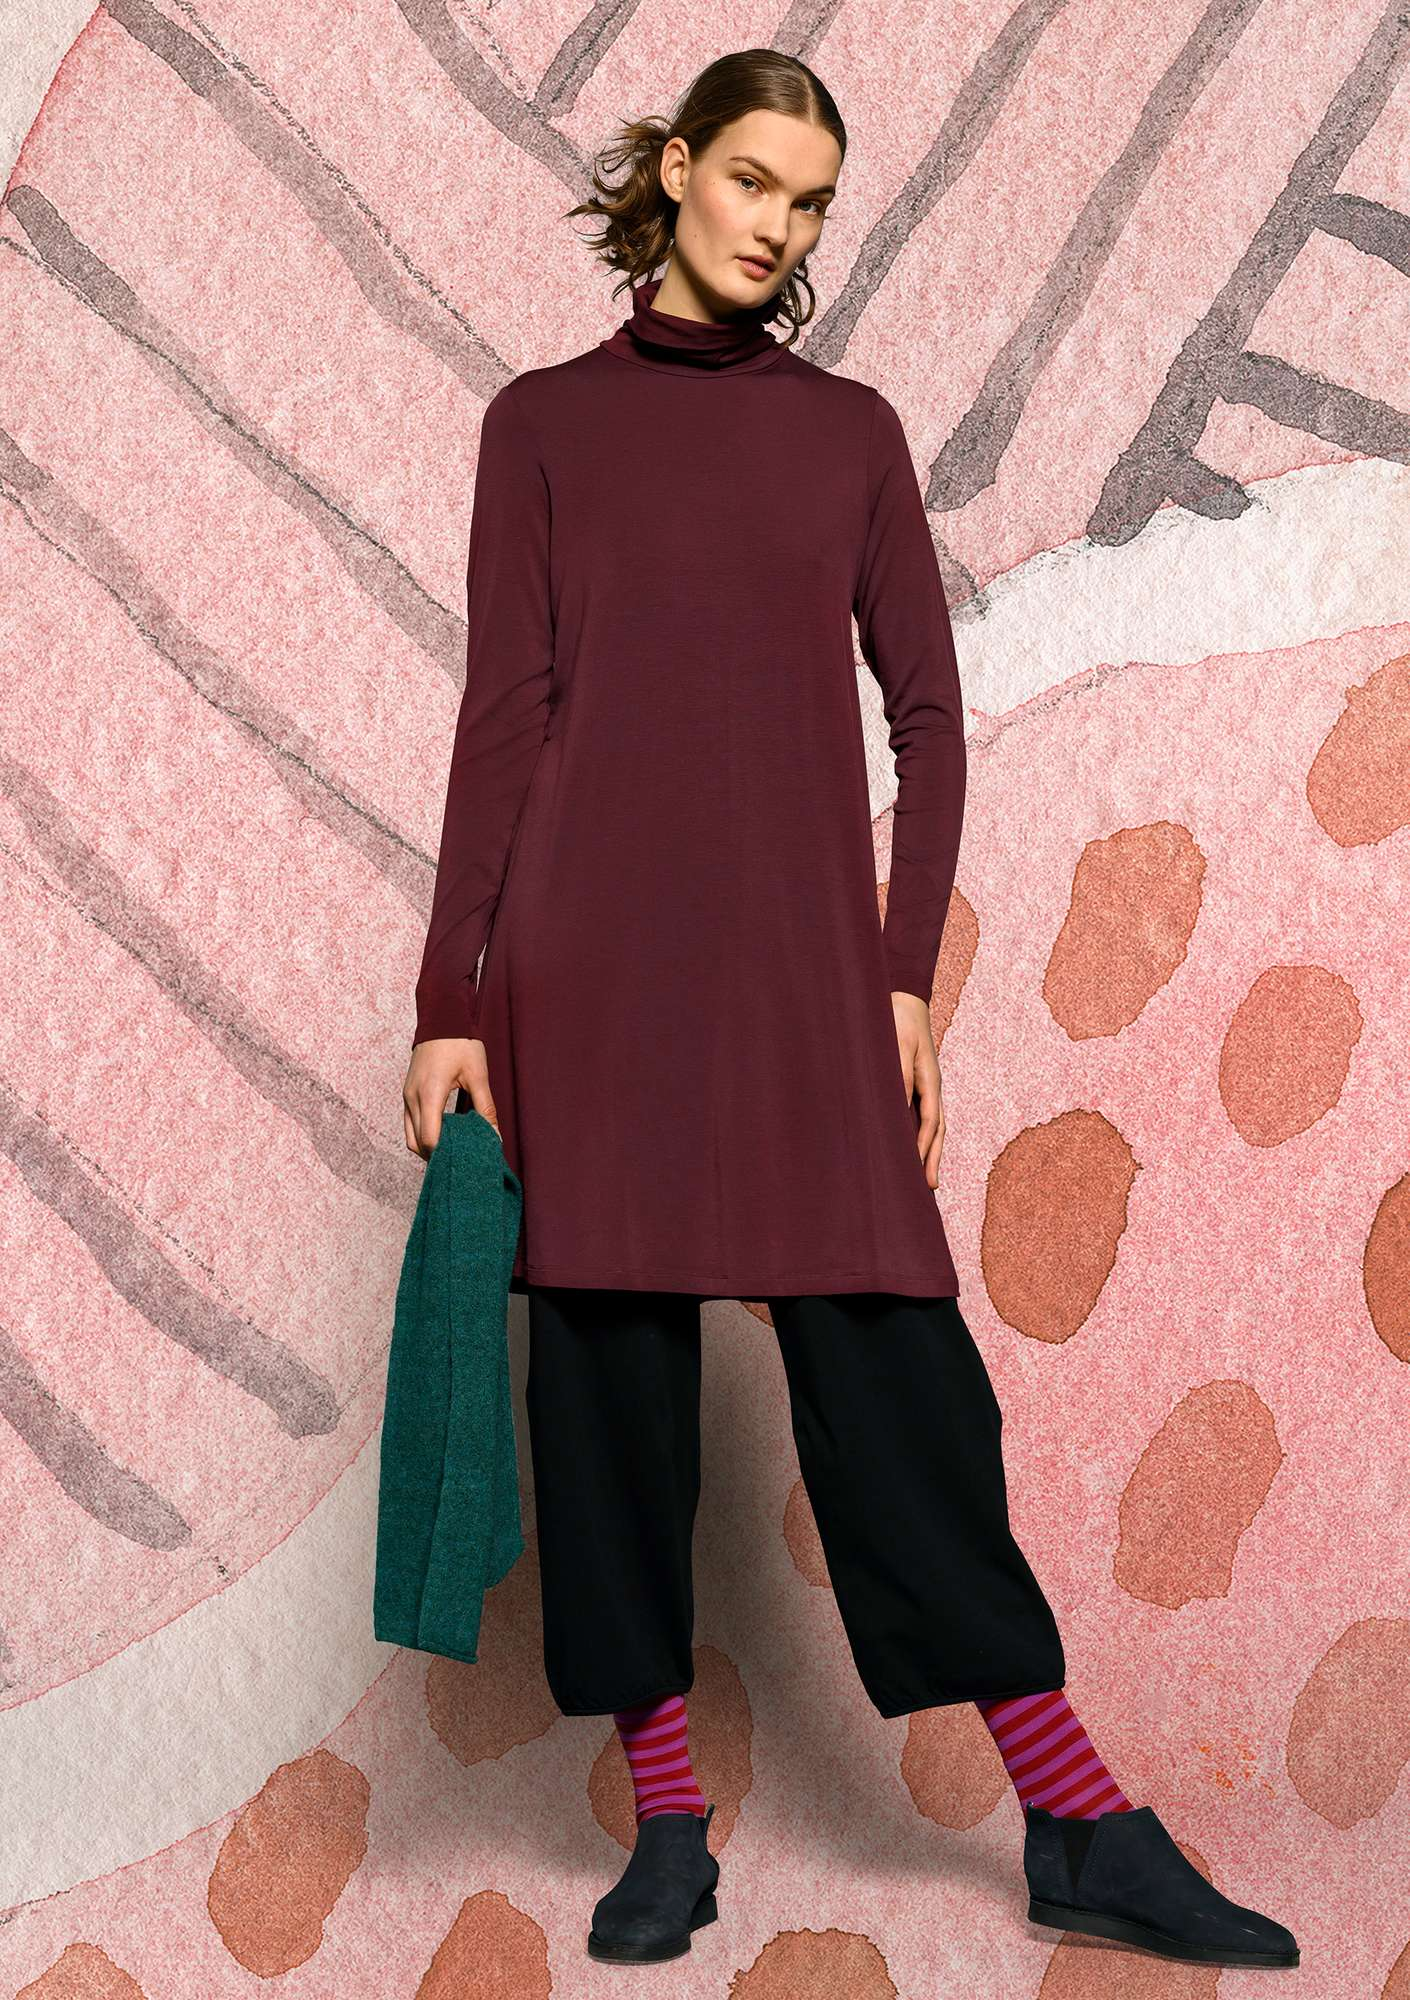 Solid-color turtleneck dress in lyocell/spandex aubergine